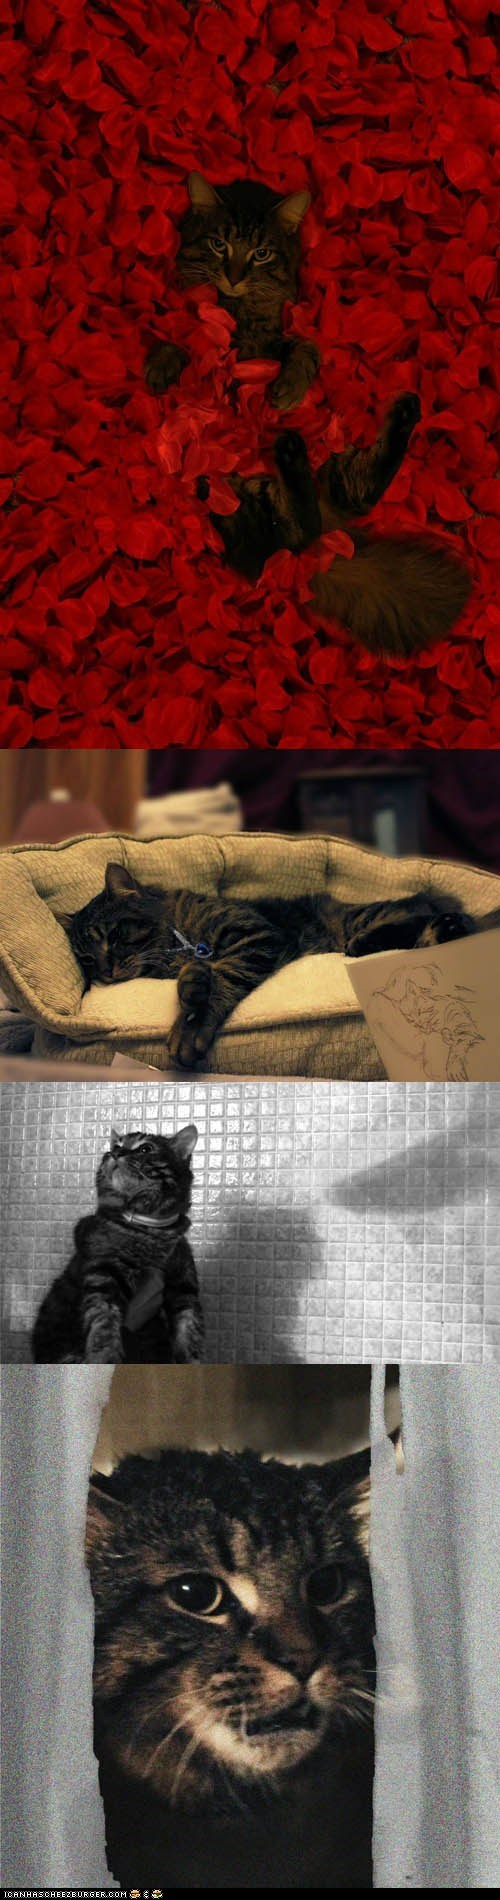 American Beauty Cats films movies psycho reenactments scenes the shining titanic - 6321004288